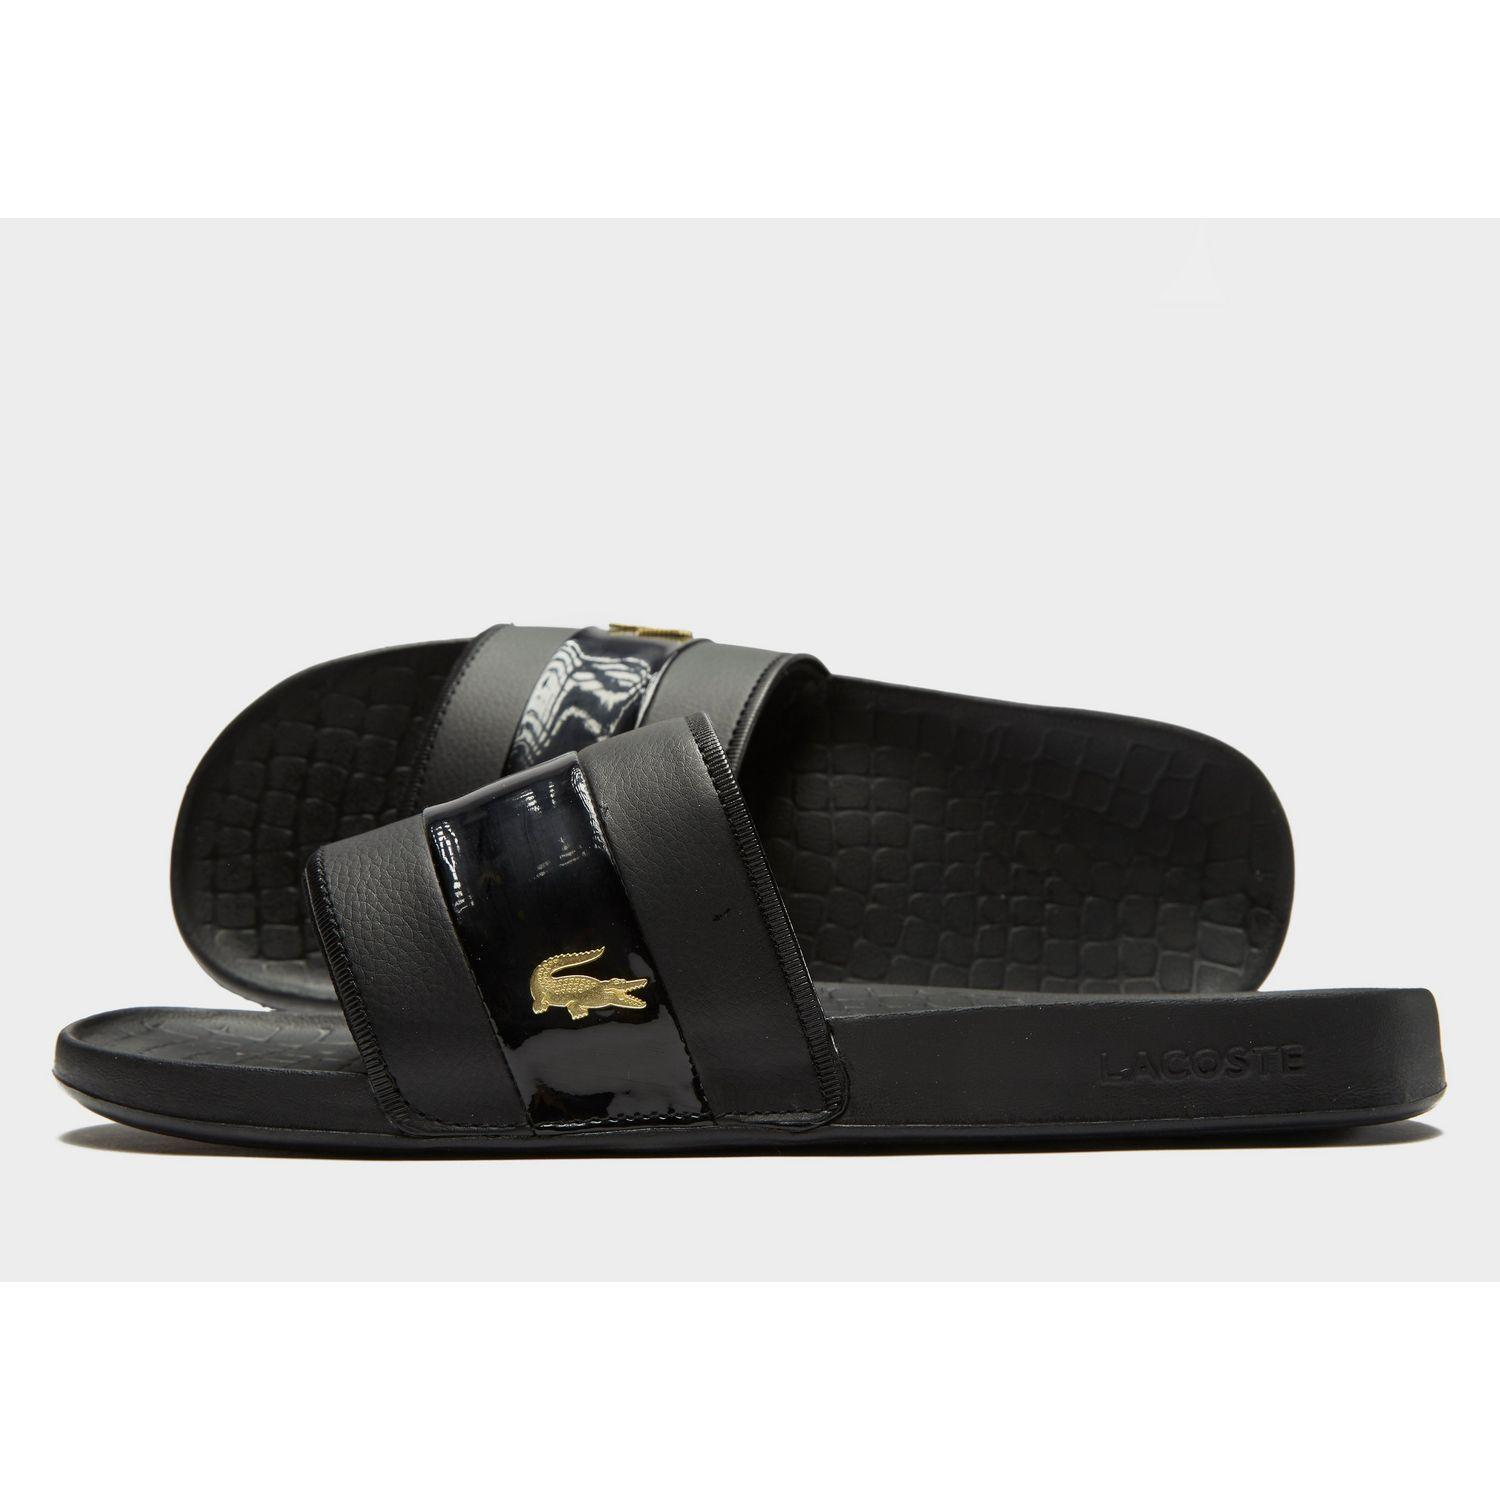 4df5ad5e5 Lacoste Frasier Deluxe Slides in Black for Men - Lyst